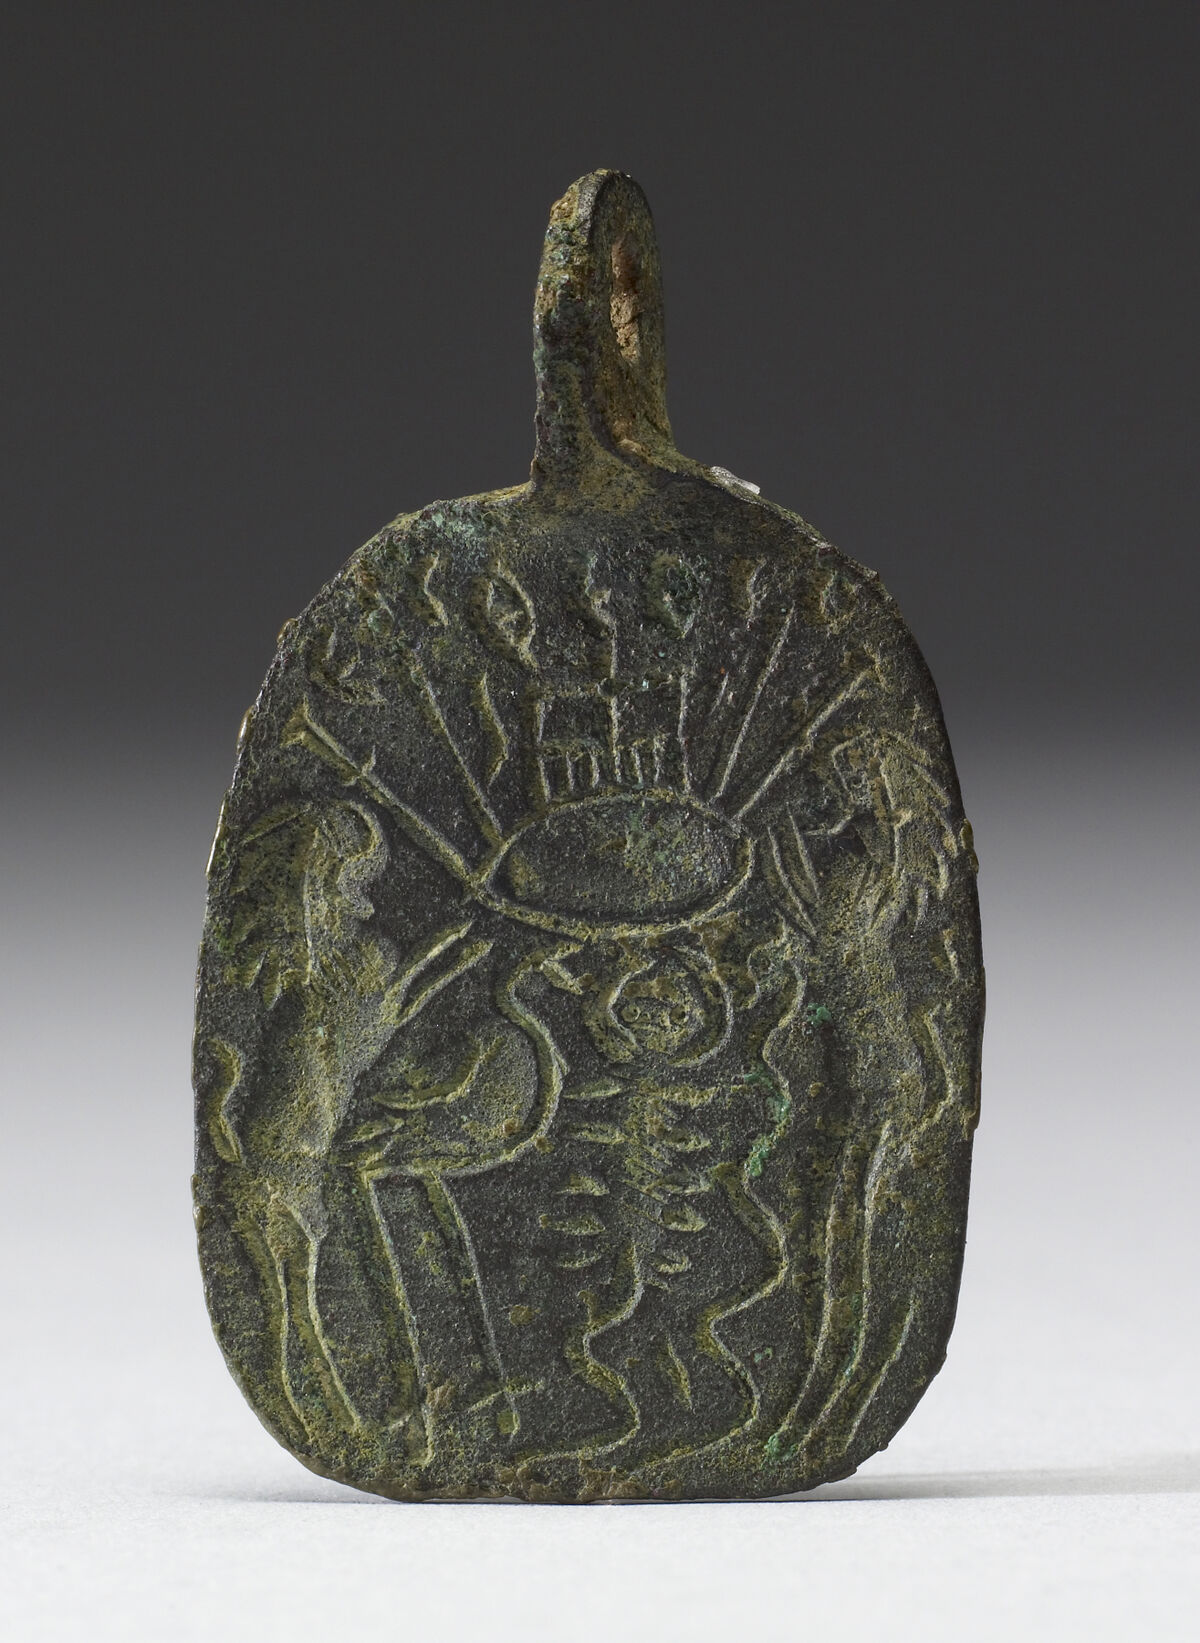 """Amuletic Pendant from the Byzantine Empire with the inscription, """"[The] one God overcomes the evil,"""" 5th century. Photo via the Walters Art Museum."""